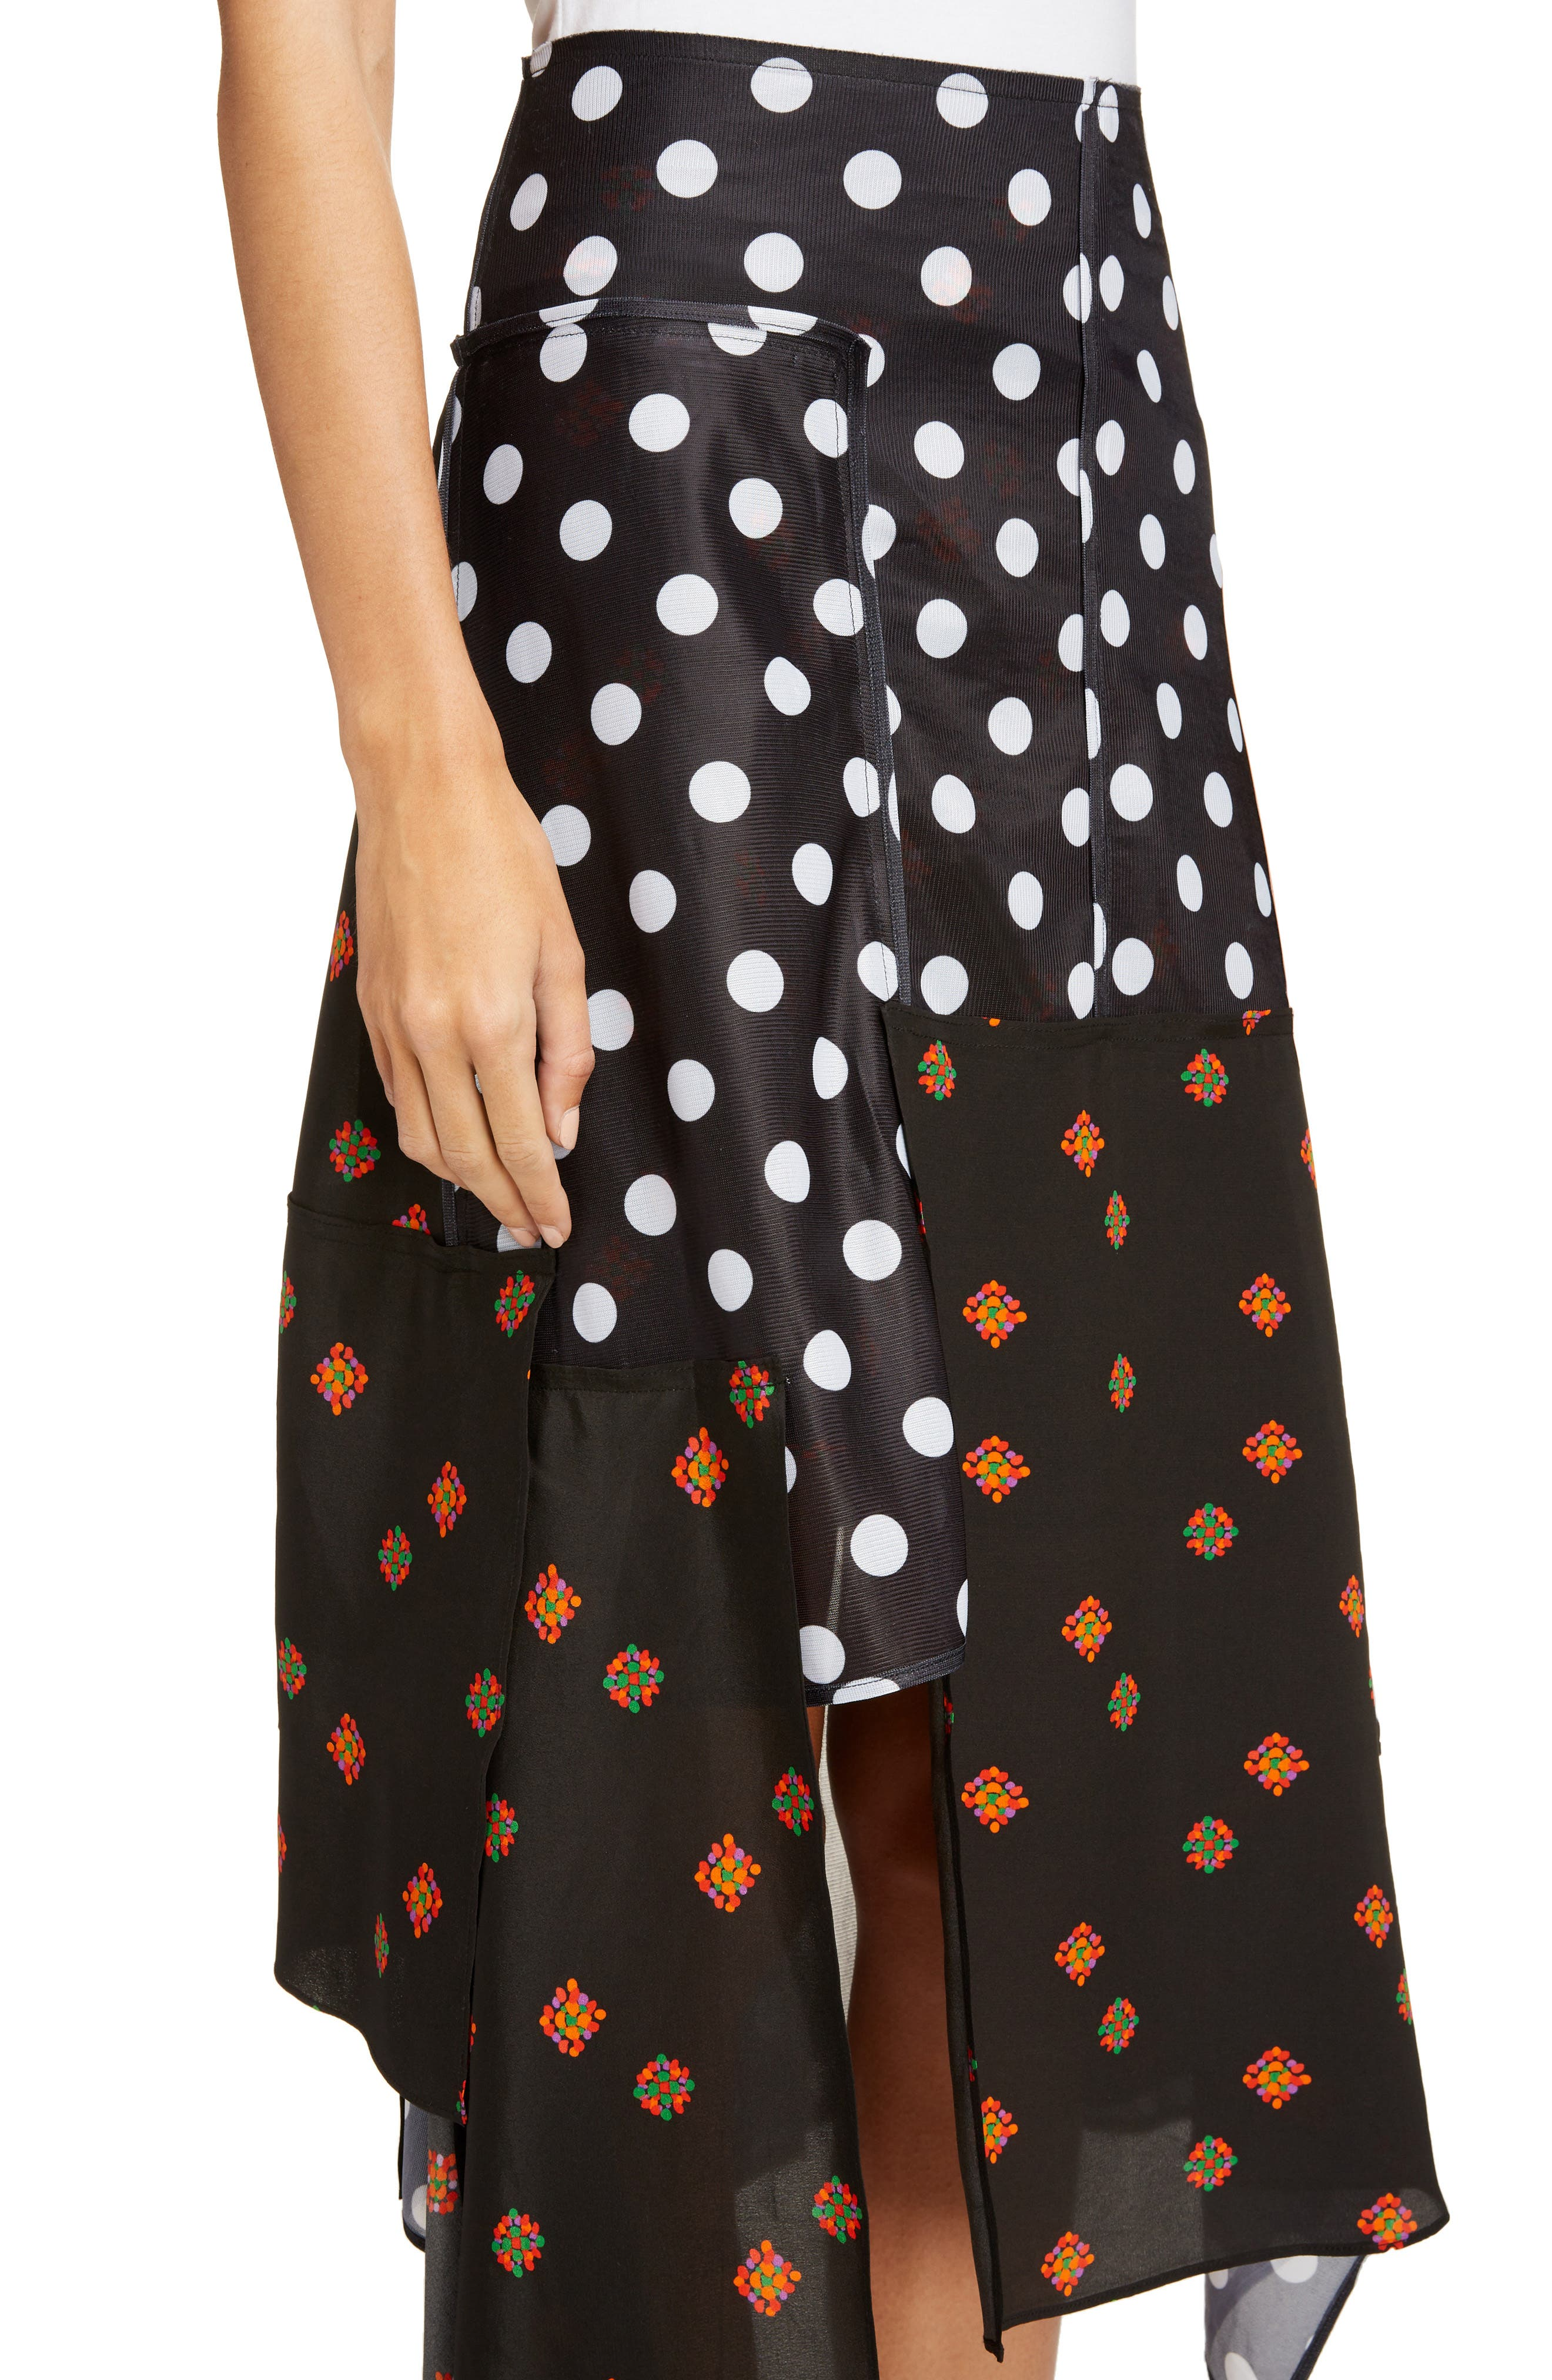 Polka Dot & Floral Panel Skirt,                             Alternate thumbnail 4, color,                             001